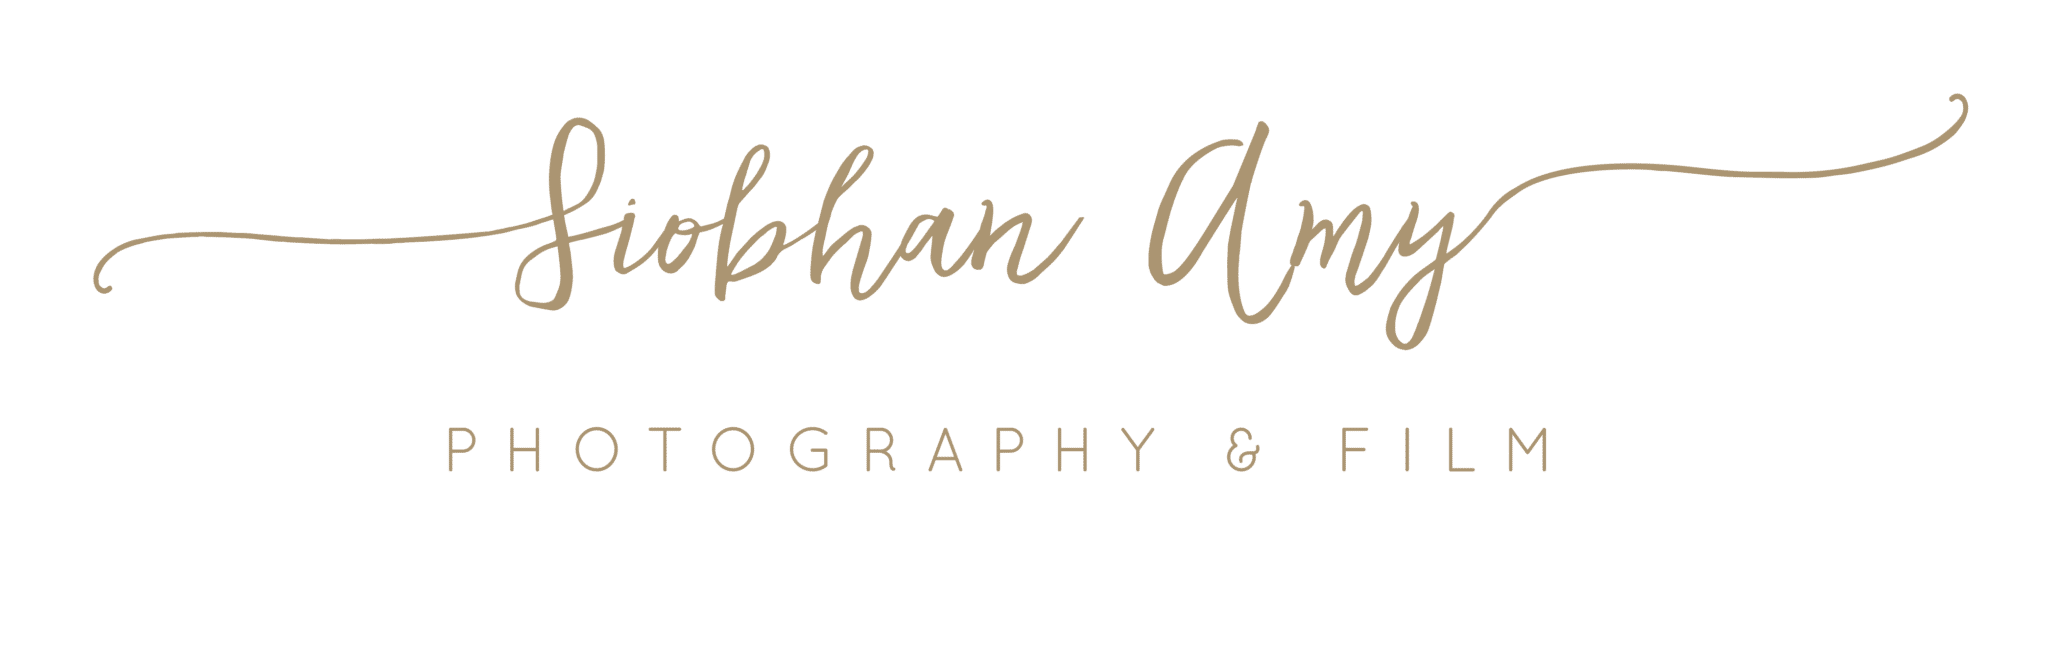 Destination Wedding Photographer | Siobhan Amy Photography | Natural, Honest Wedding Photography